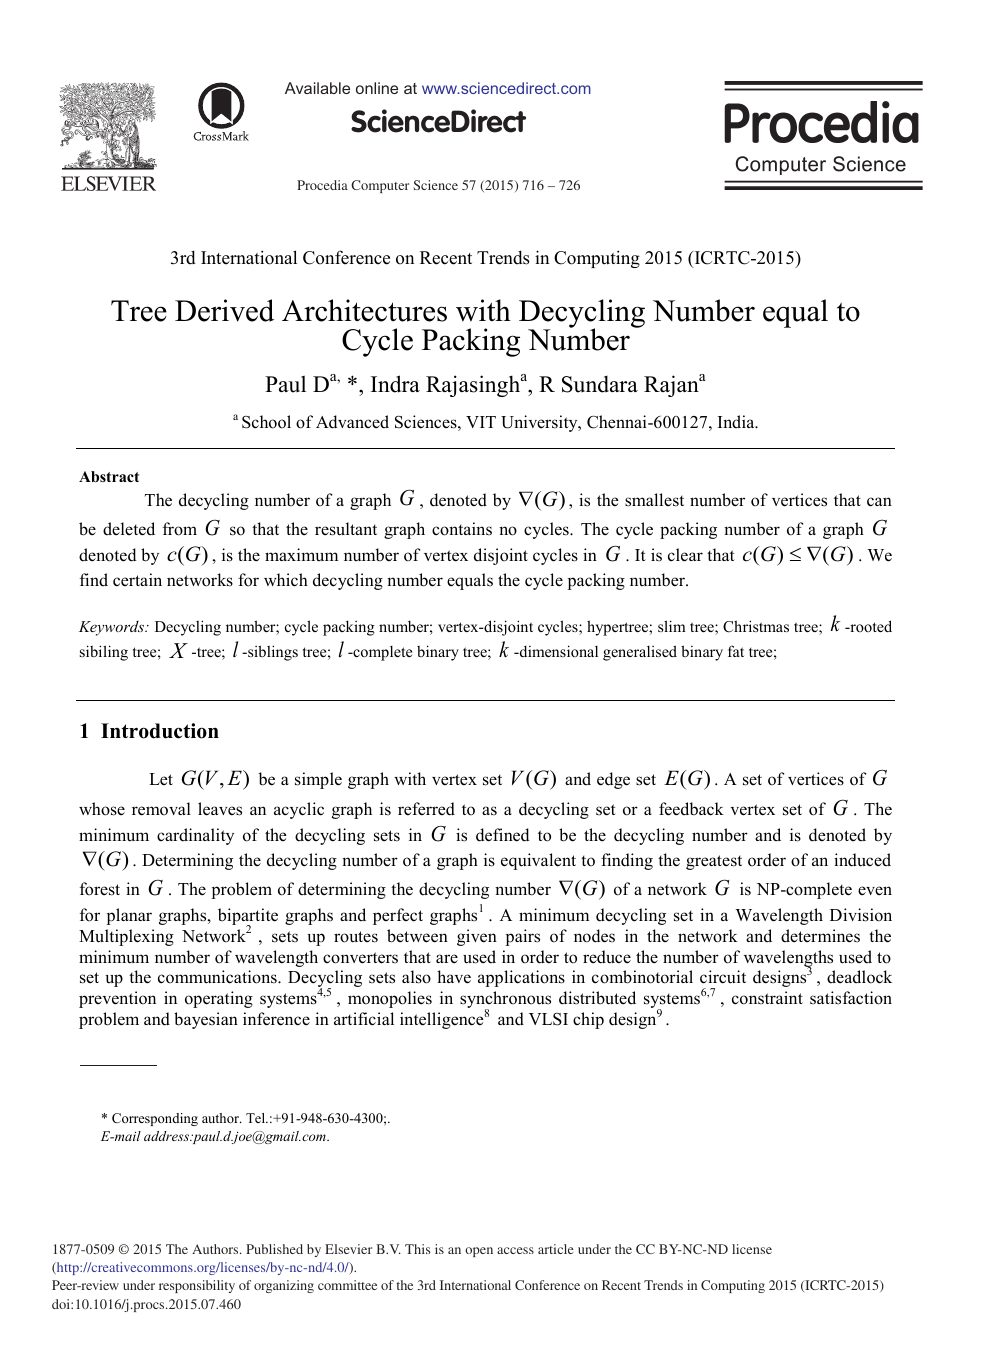 Tree Derived Architectures With Decycling Number Equal To Cycle Packing Number Topic Of Research Paper In Computer And Information Sciences Download Scholarly Article Pdf And Read For Free On Cyberleninka Open